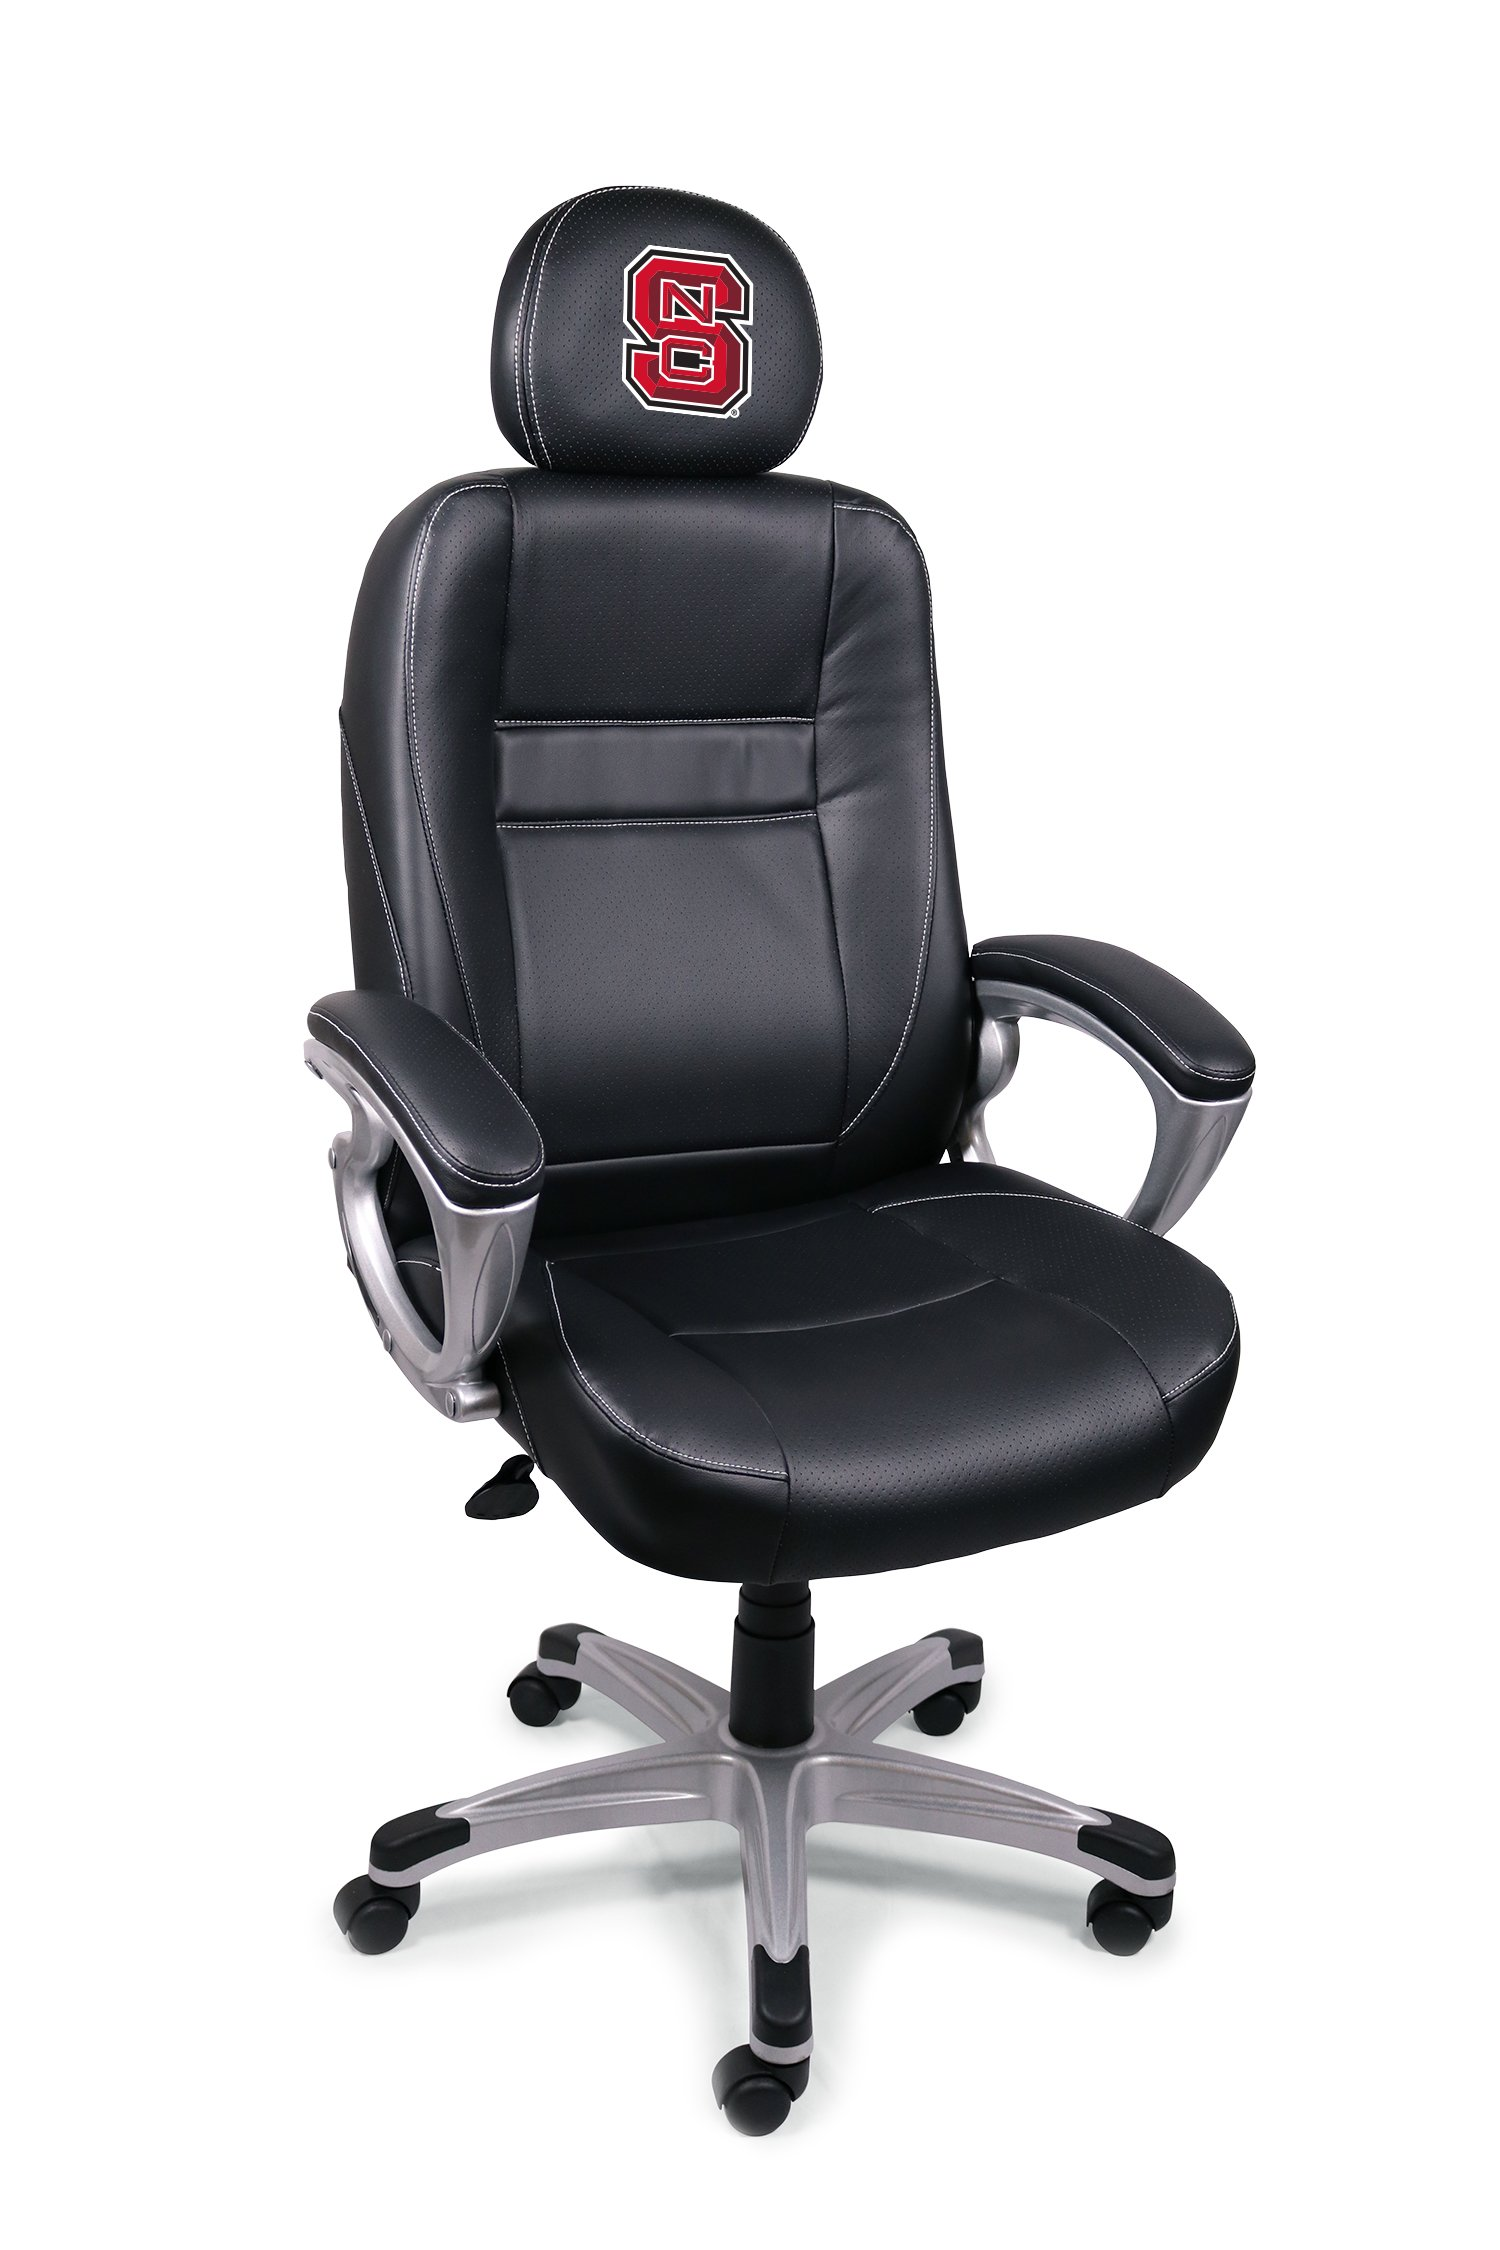 NCAA College North Carolina State Wolfpack Leather Office Chair